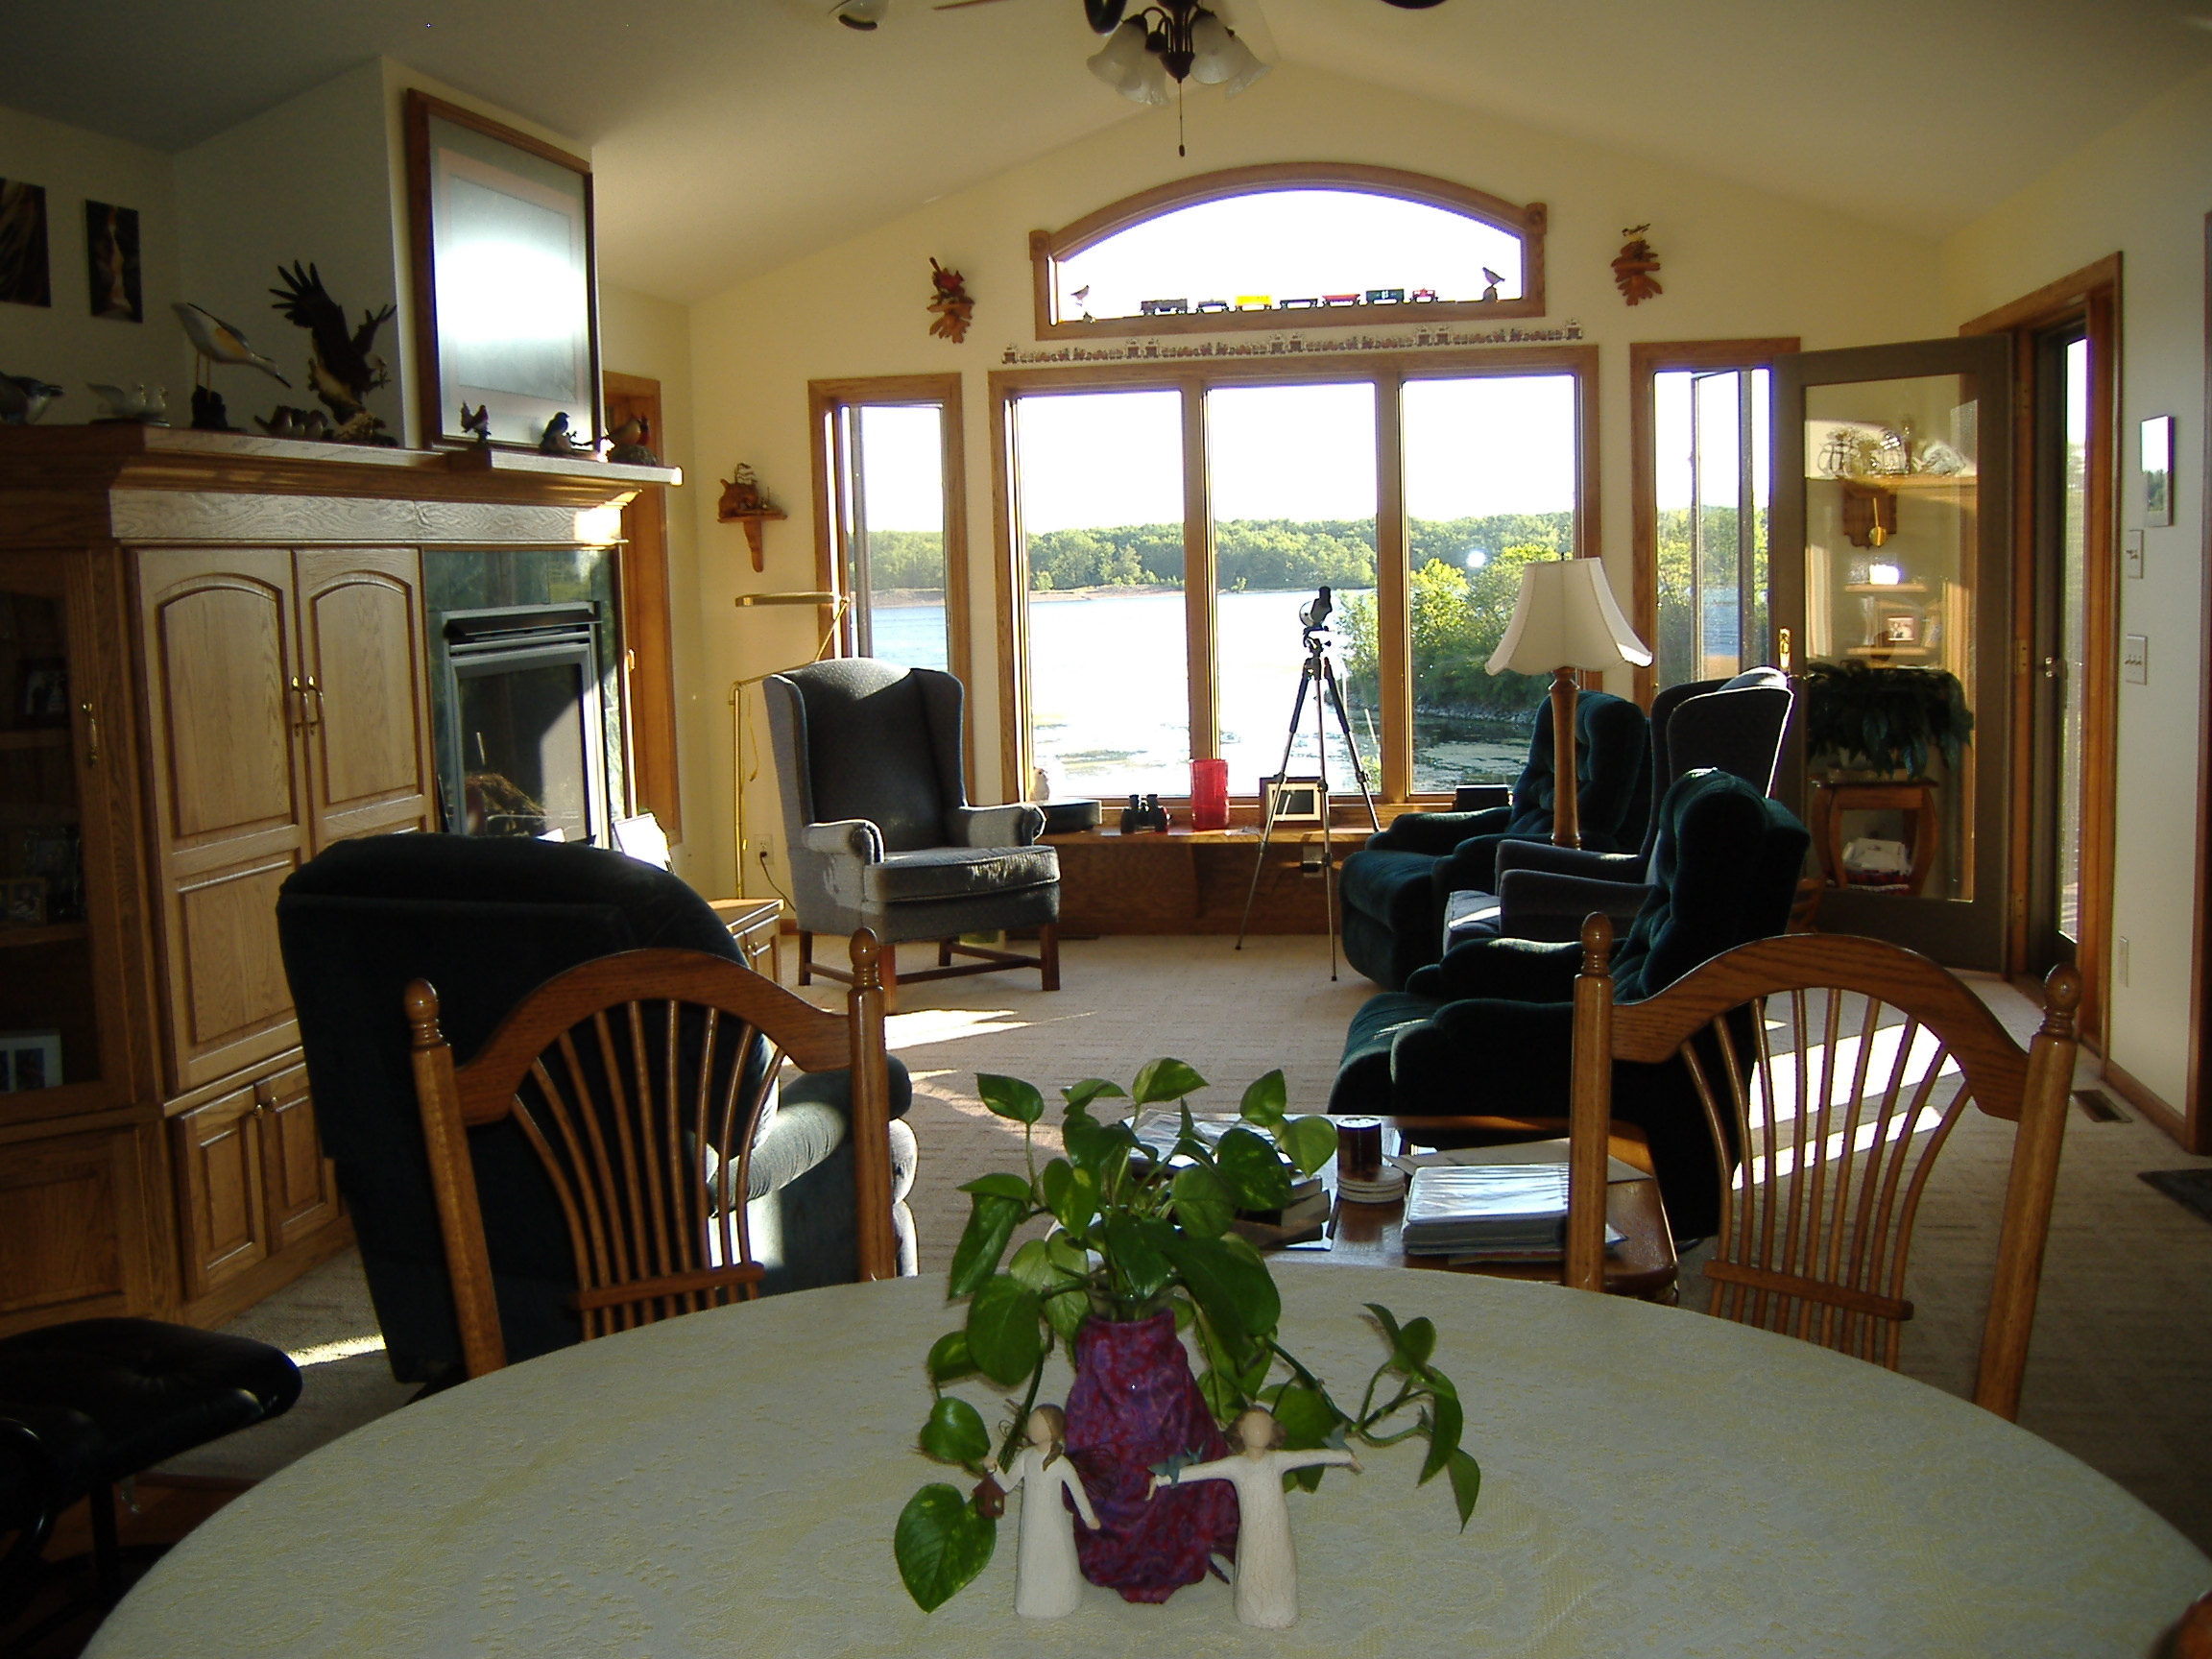 Bed and Breakfast Wabasha MN